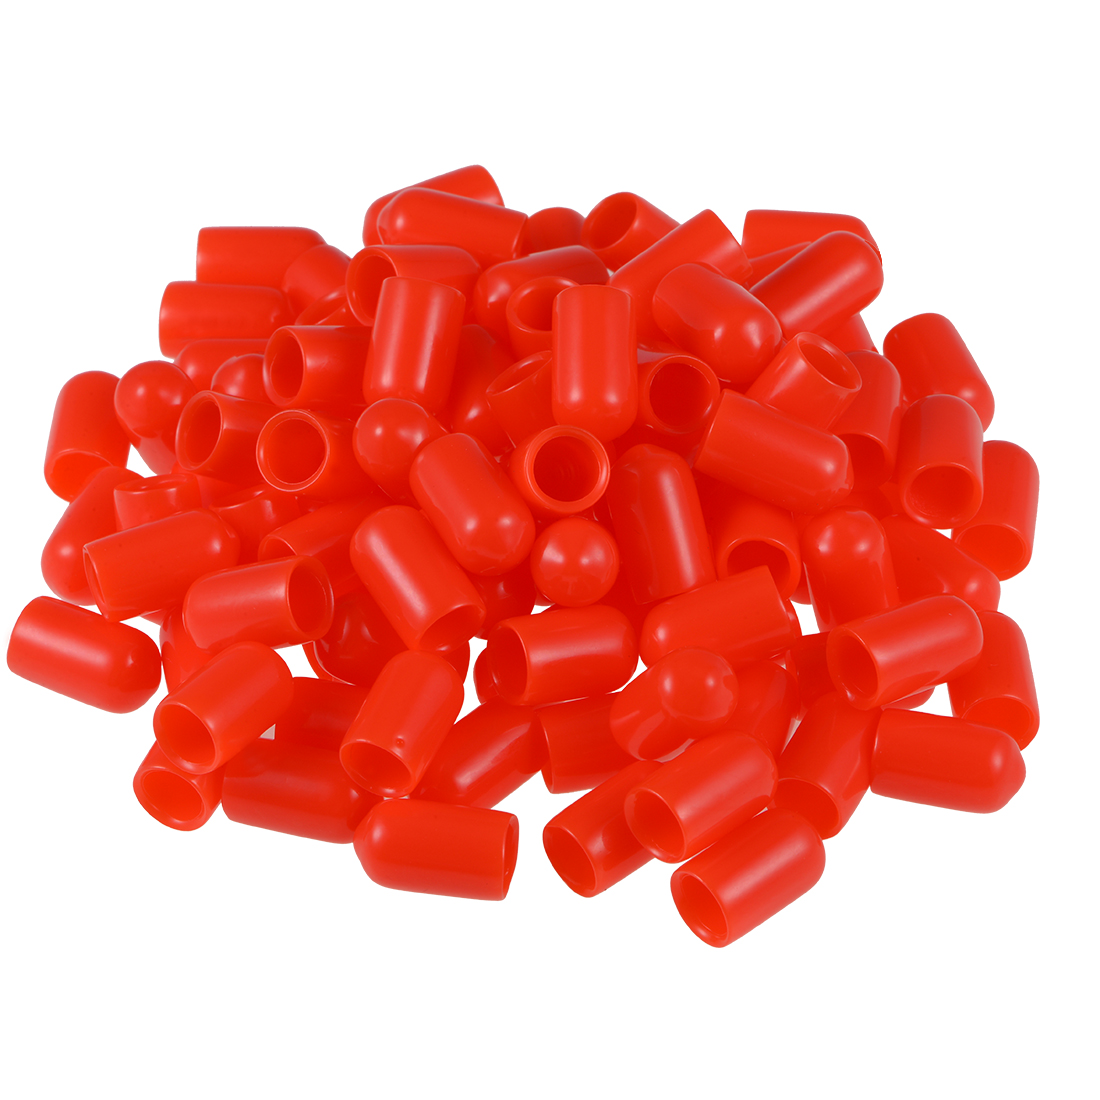 Screw Thread Protector, 7.5mm ID Round End Cap Cover Red Tube Caps 100pcs